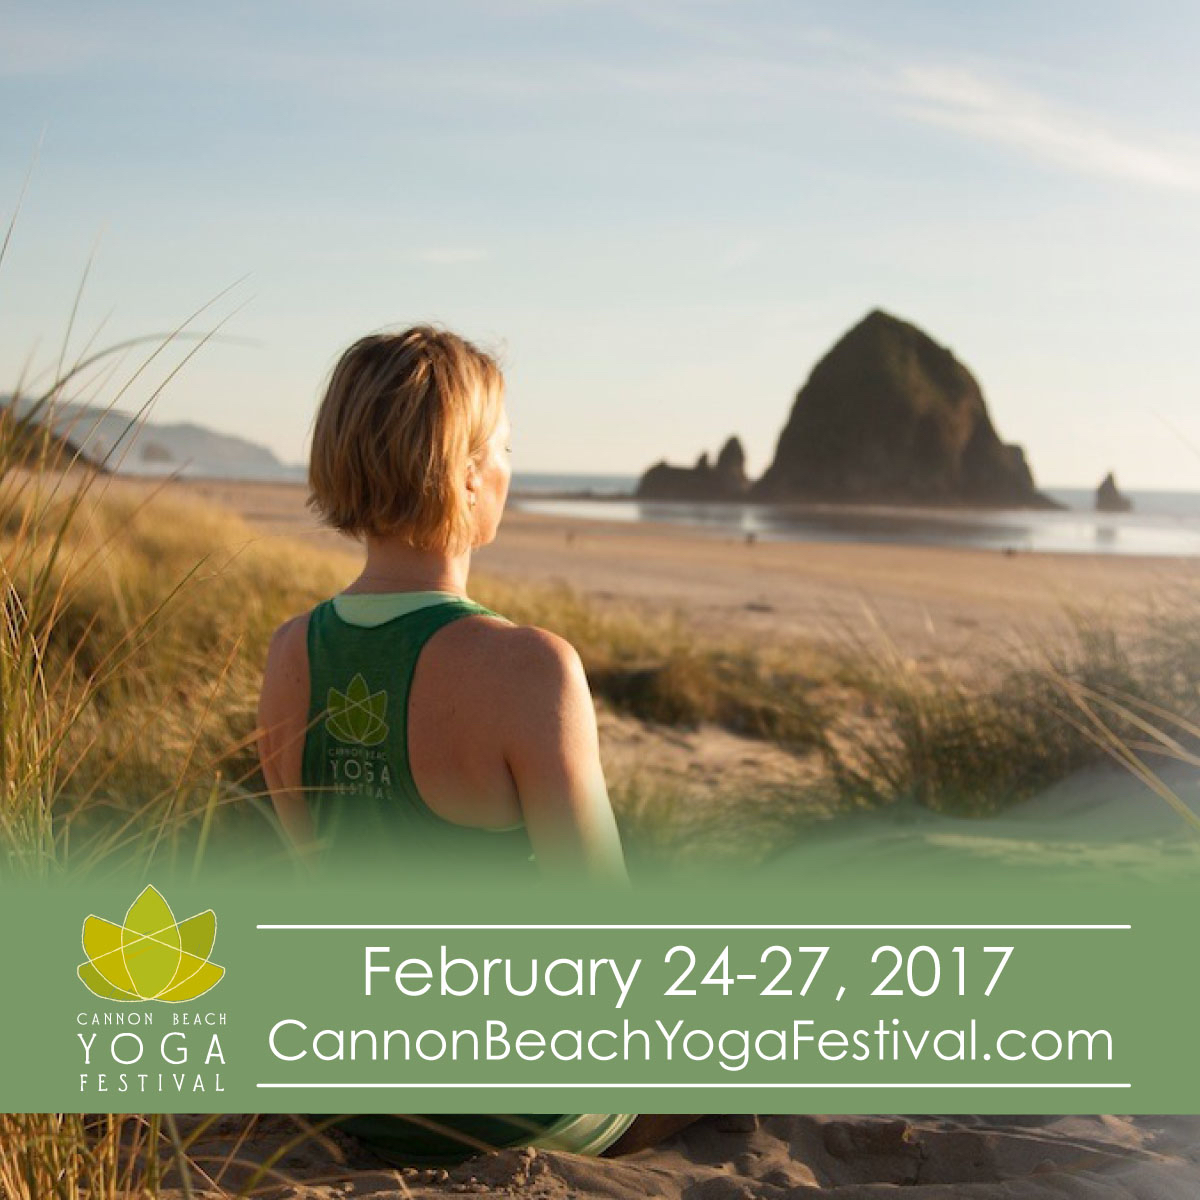 cannon beach dating Cannon beach - free dating, singles and personals plenty of fish register help sign in.